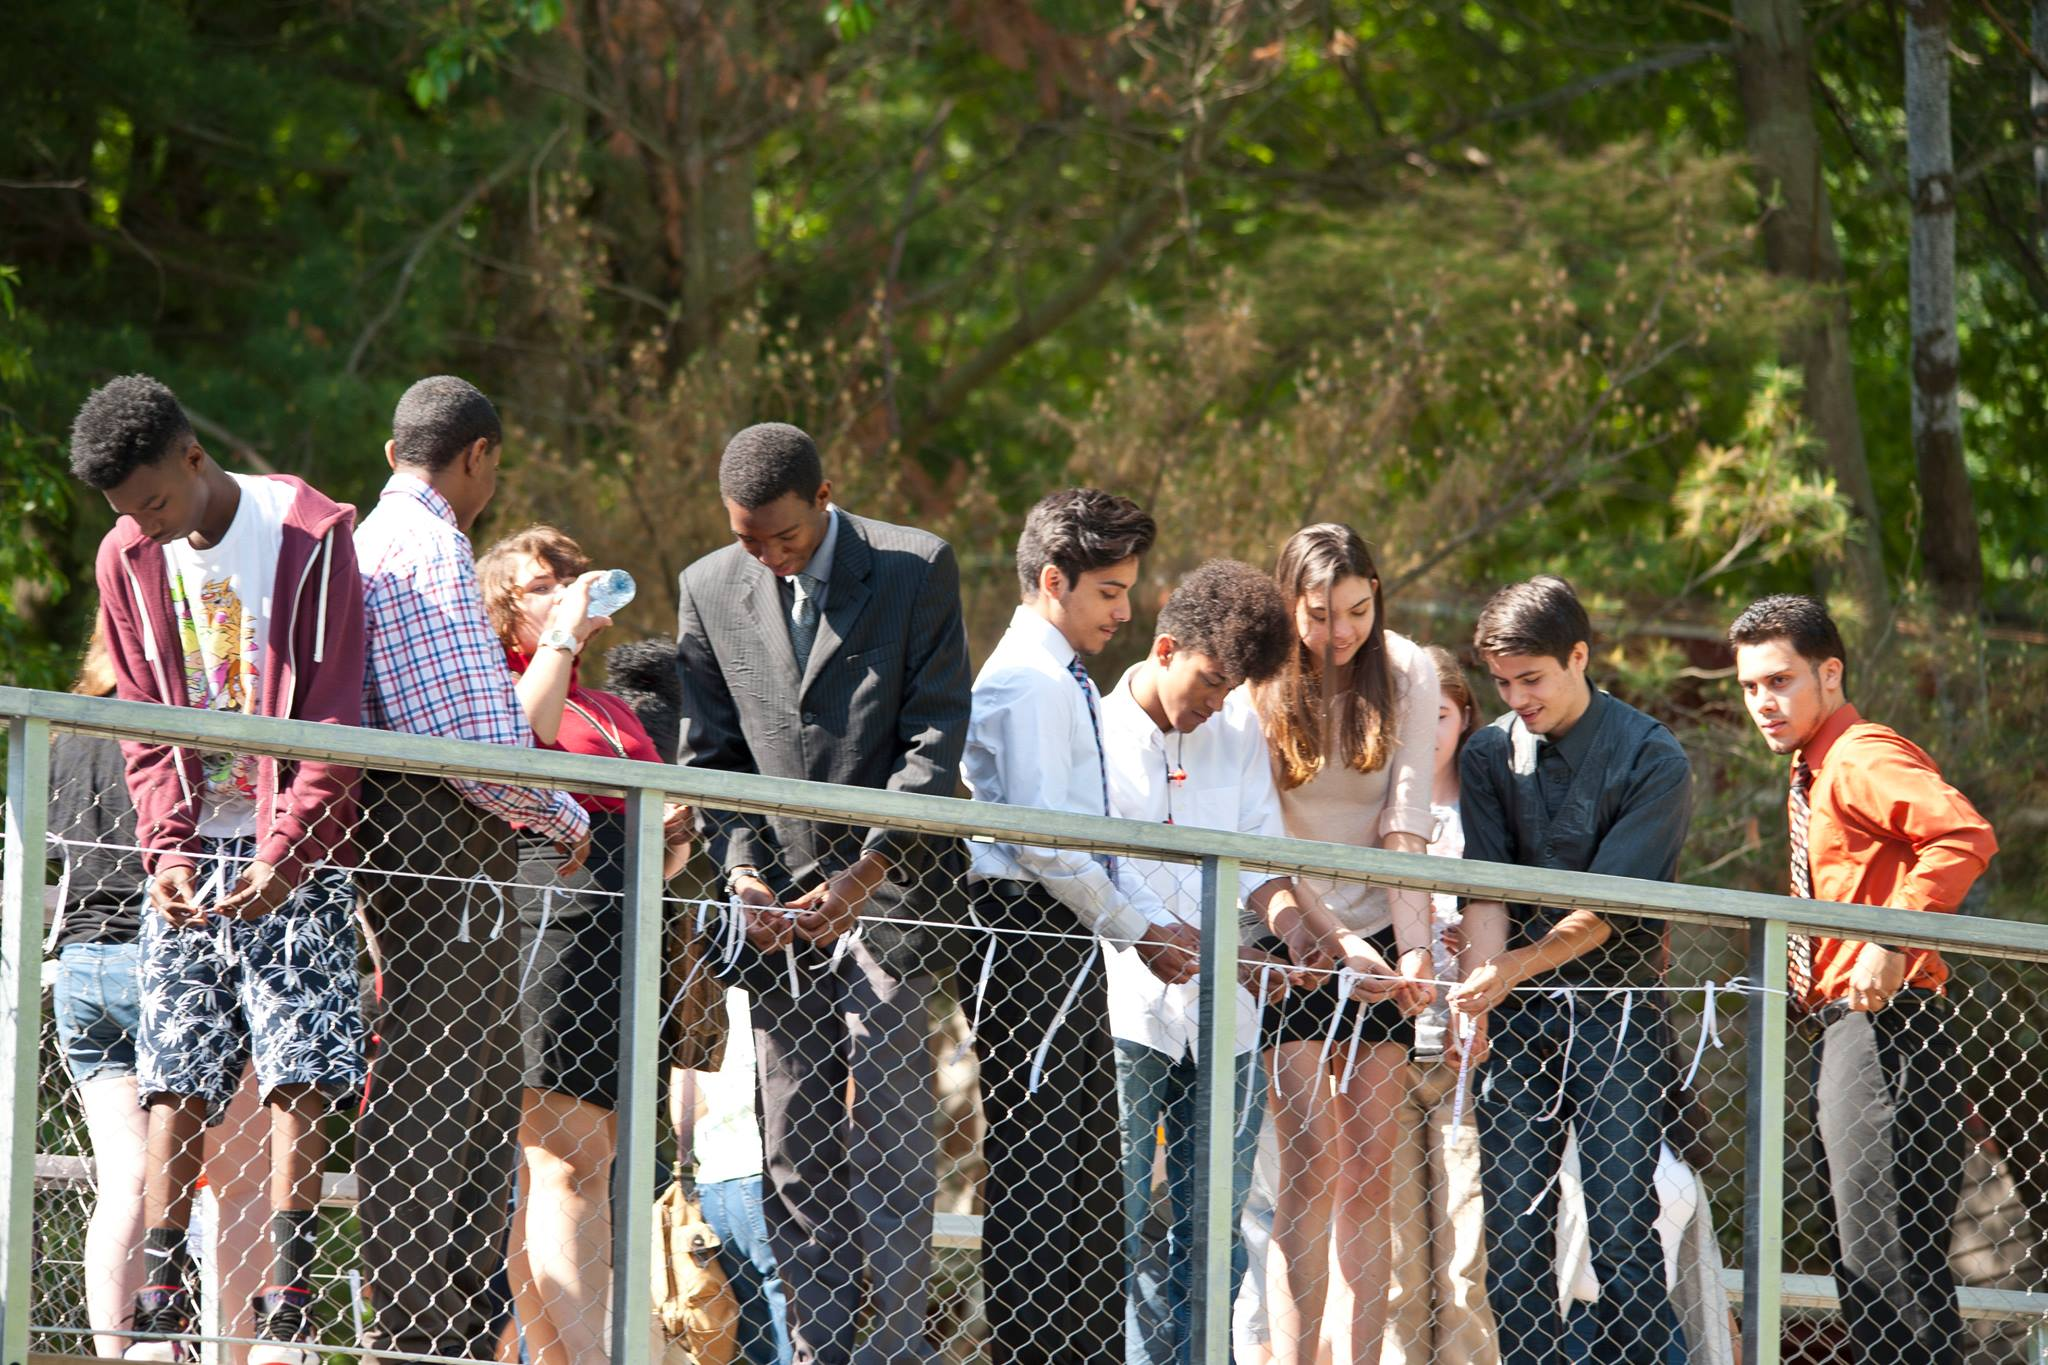 Students tie wishes written on ribbons to the bridge of the new Common Ground High School building.